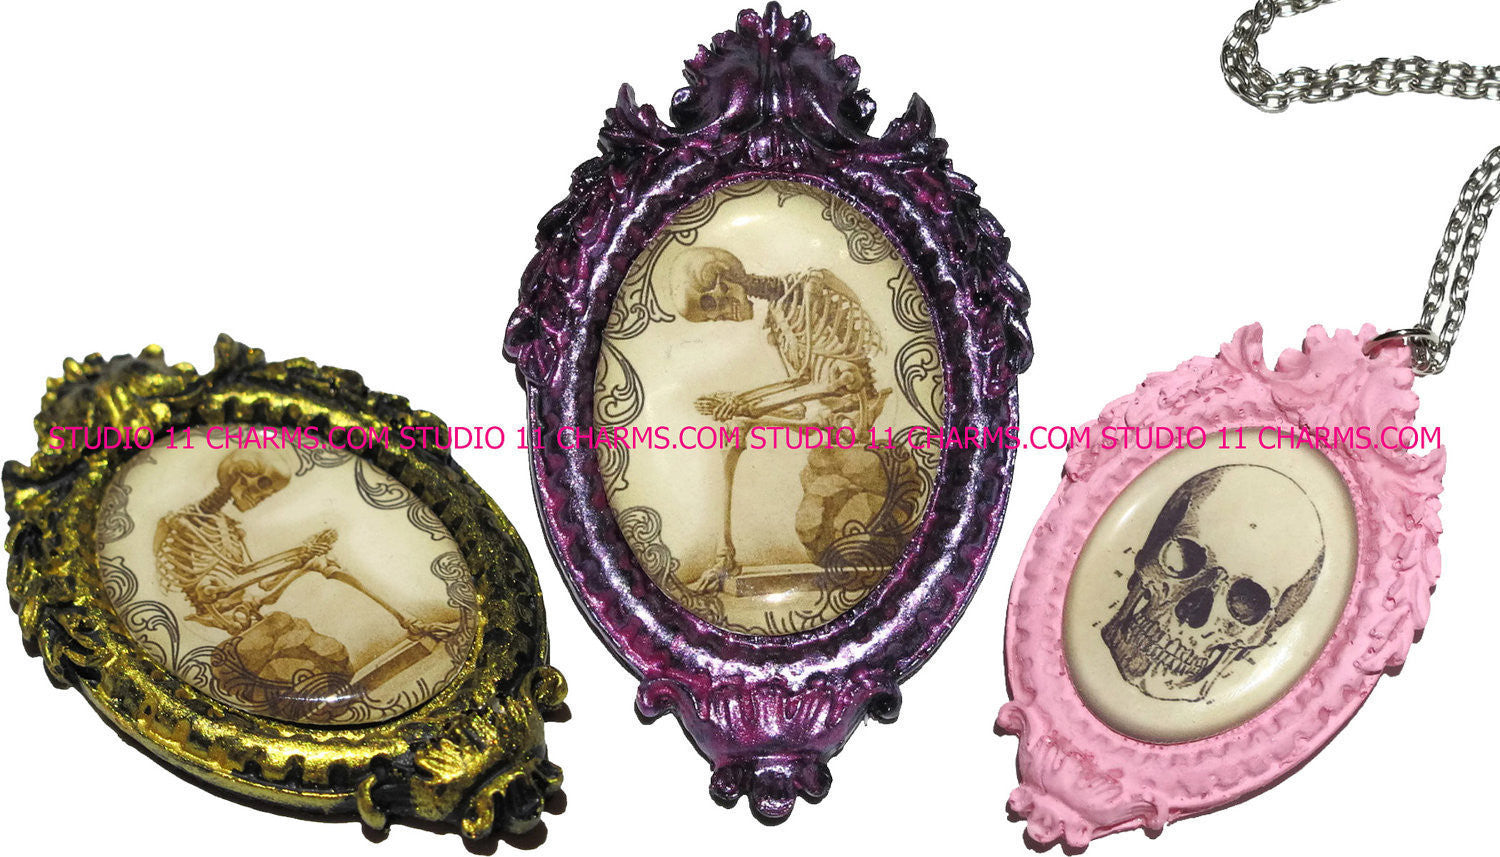 40x30, 18x25, 13X18 Resin Cameo LOW DOME Cabochon. Alice in Wonderland 39b quotes